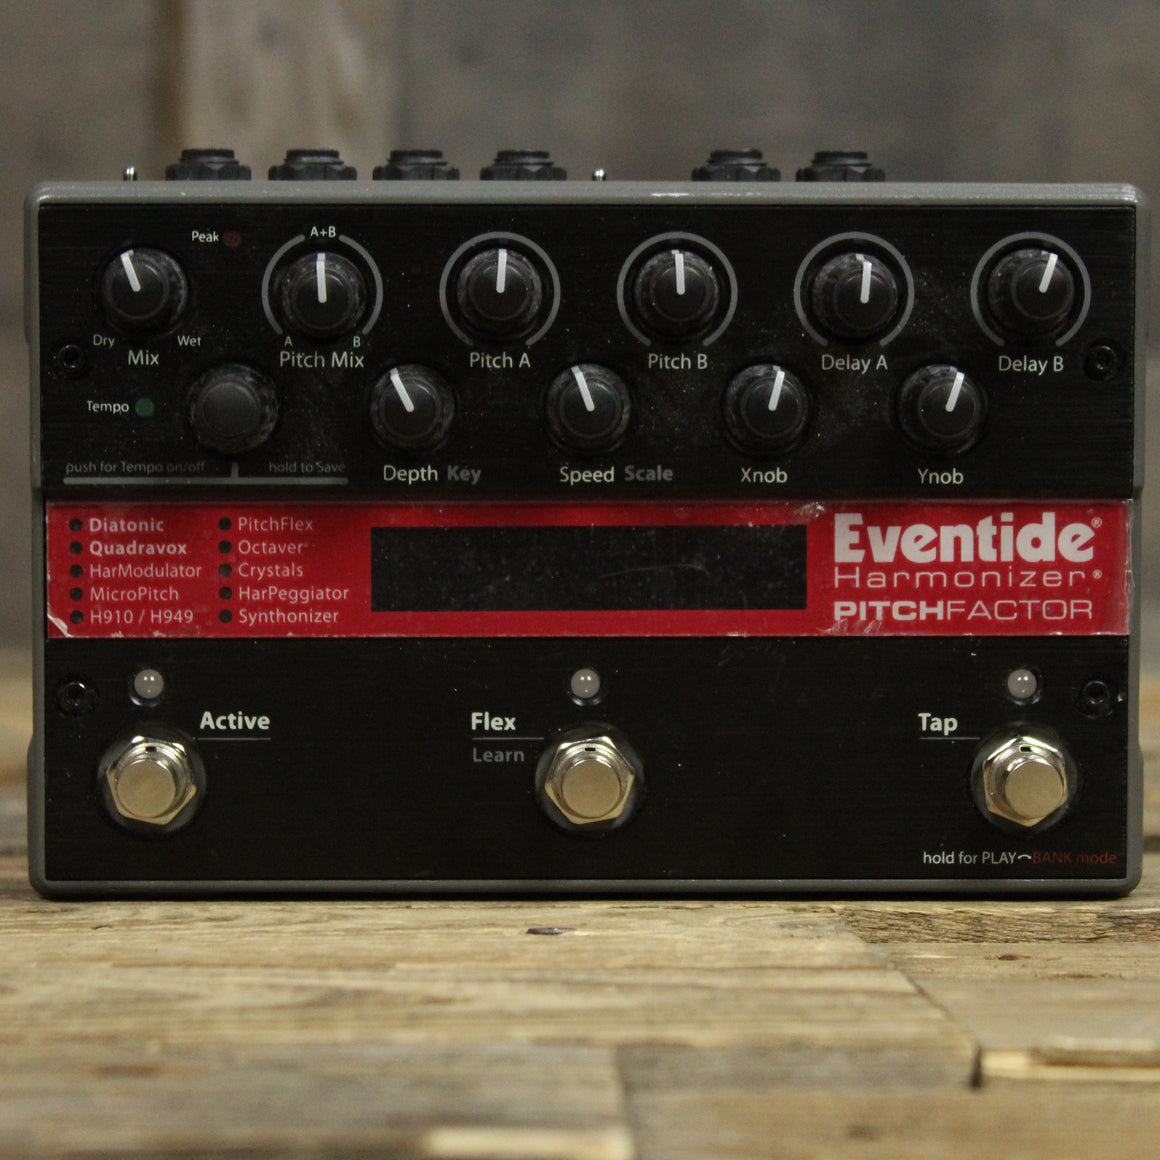 Pre-Owned Eventide Pitch Factor